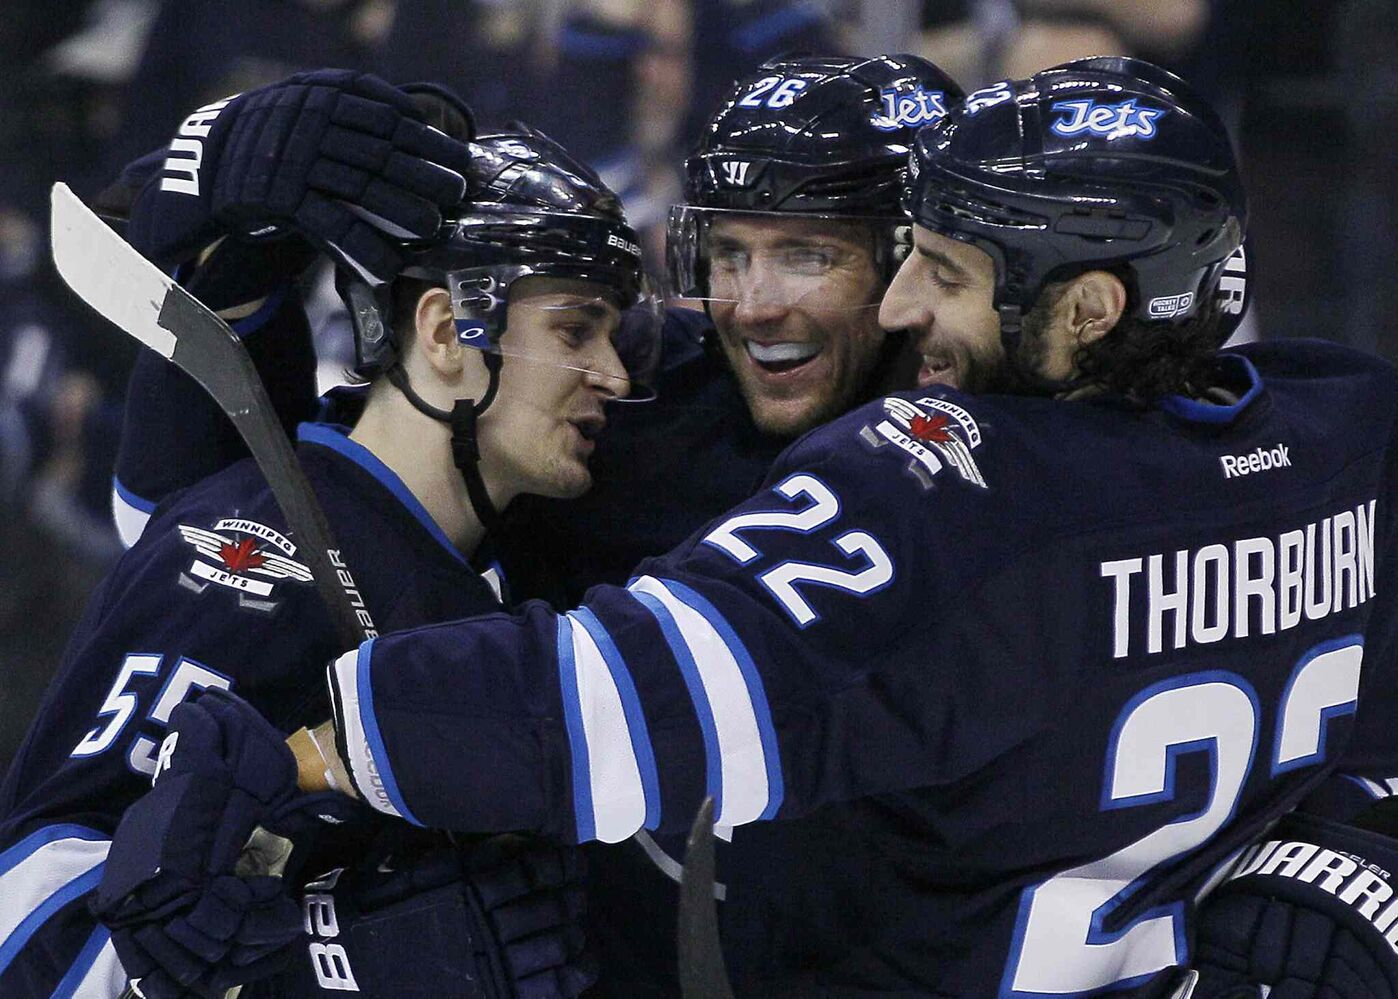 Jets Mark Scheifele (left), Blake Wheeler and Chris Thorburn (right) celebrate Wheeler's goal.